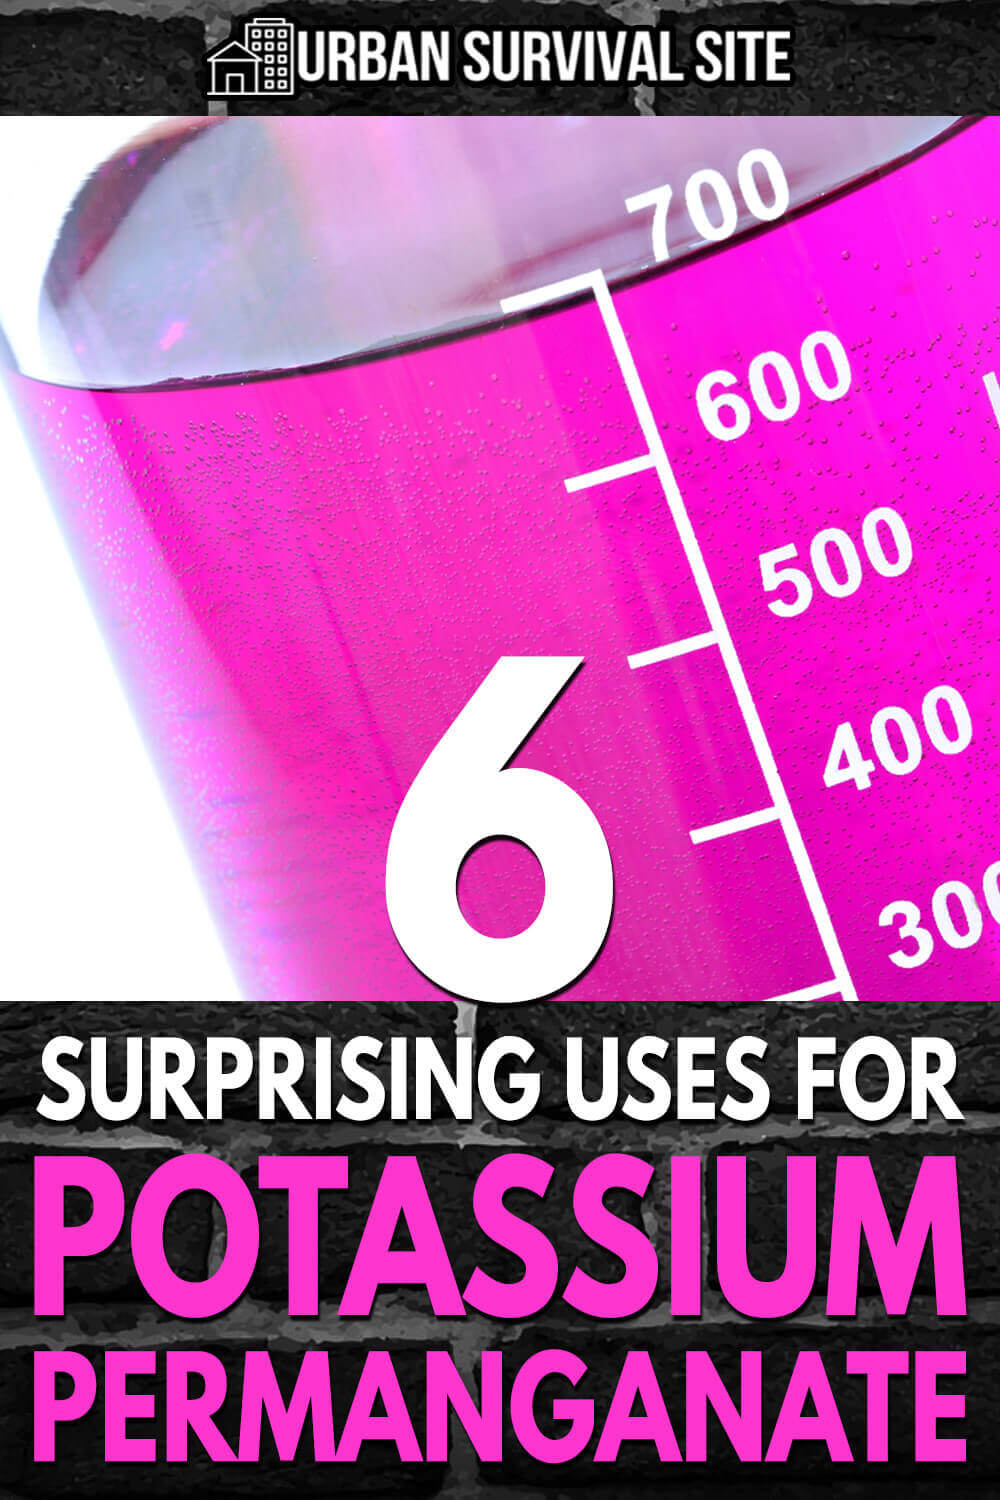 6 Surprising Uses for Potassium Permanganate